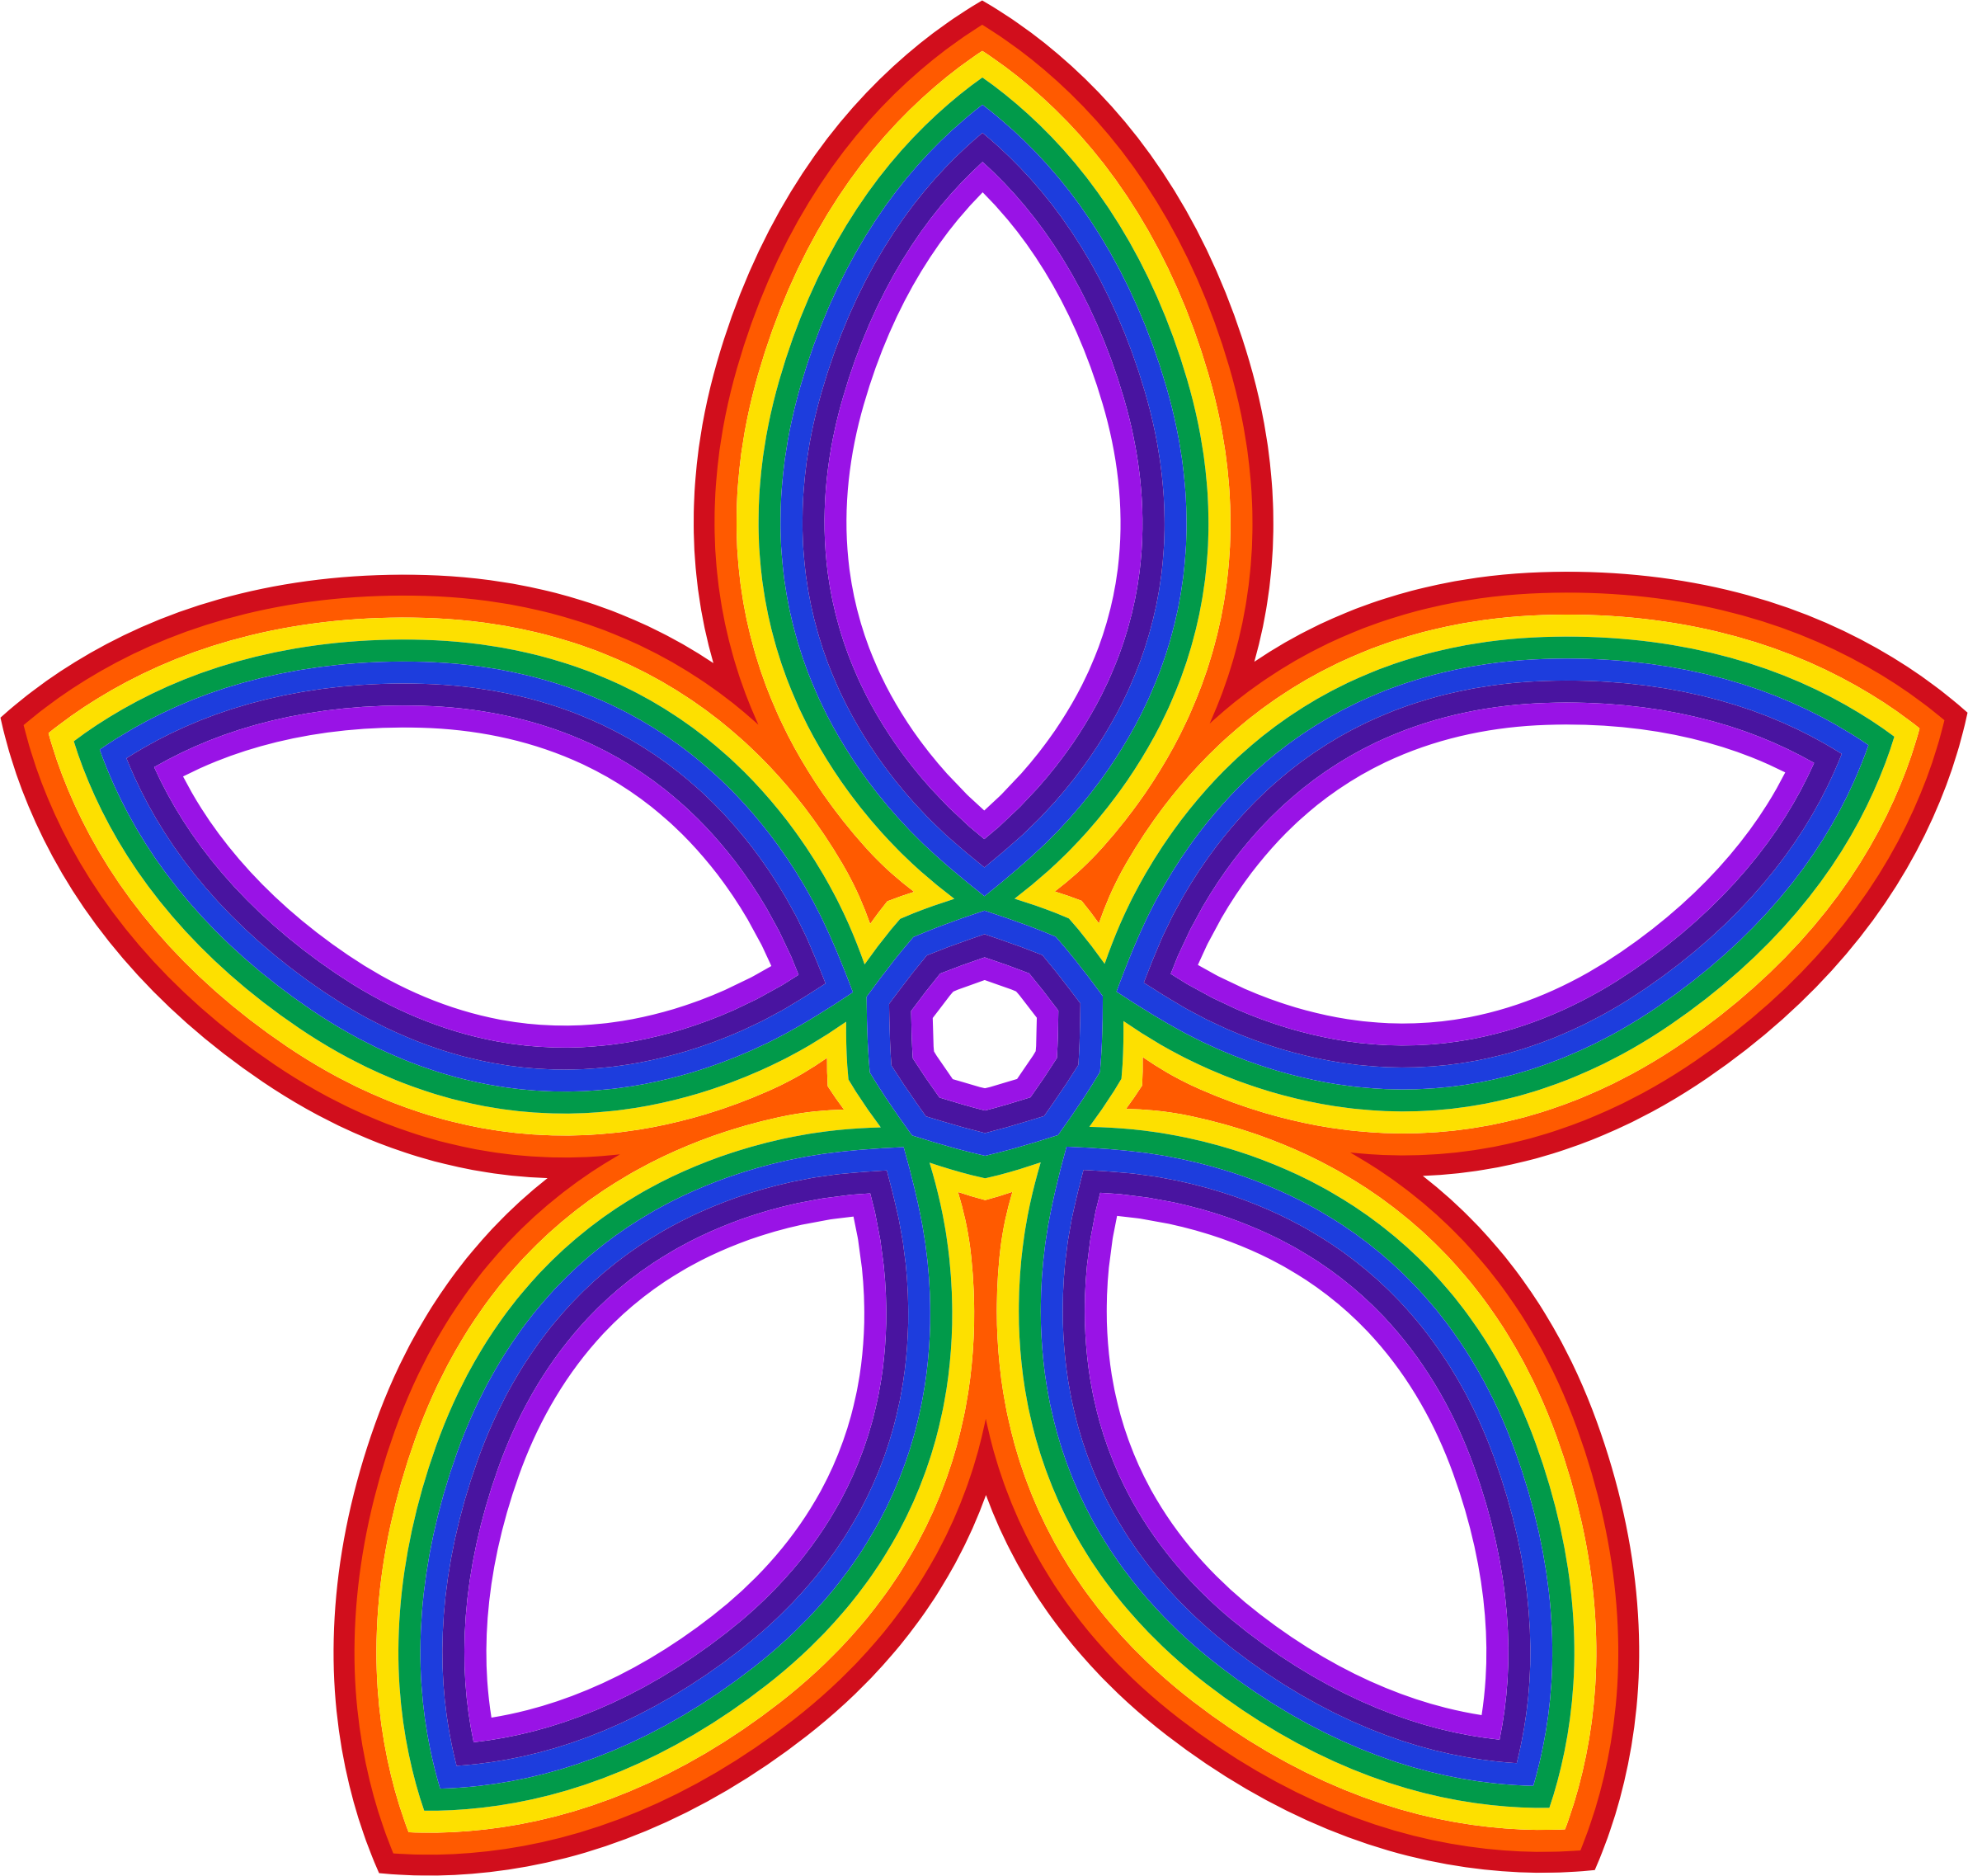 Rainbow Flower by GDJ